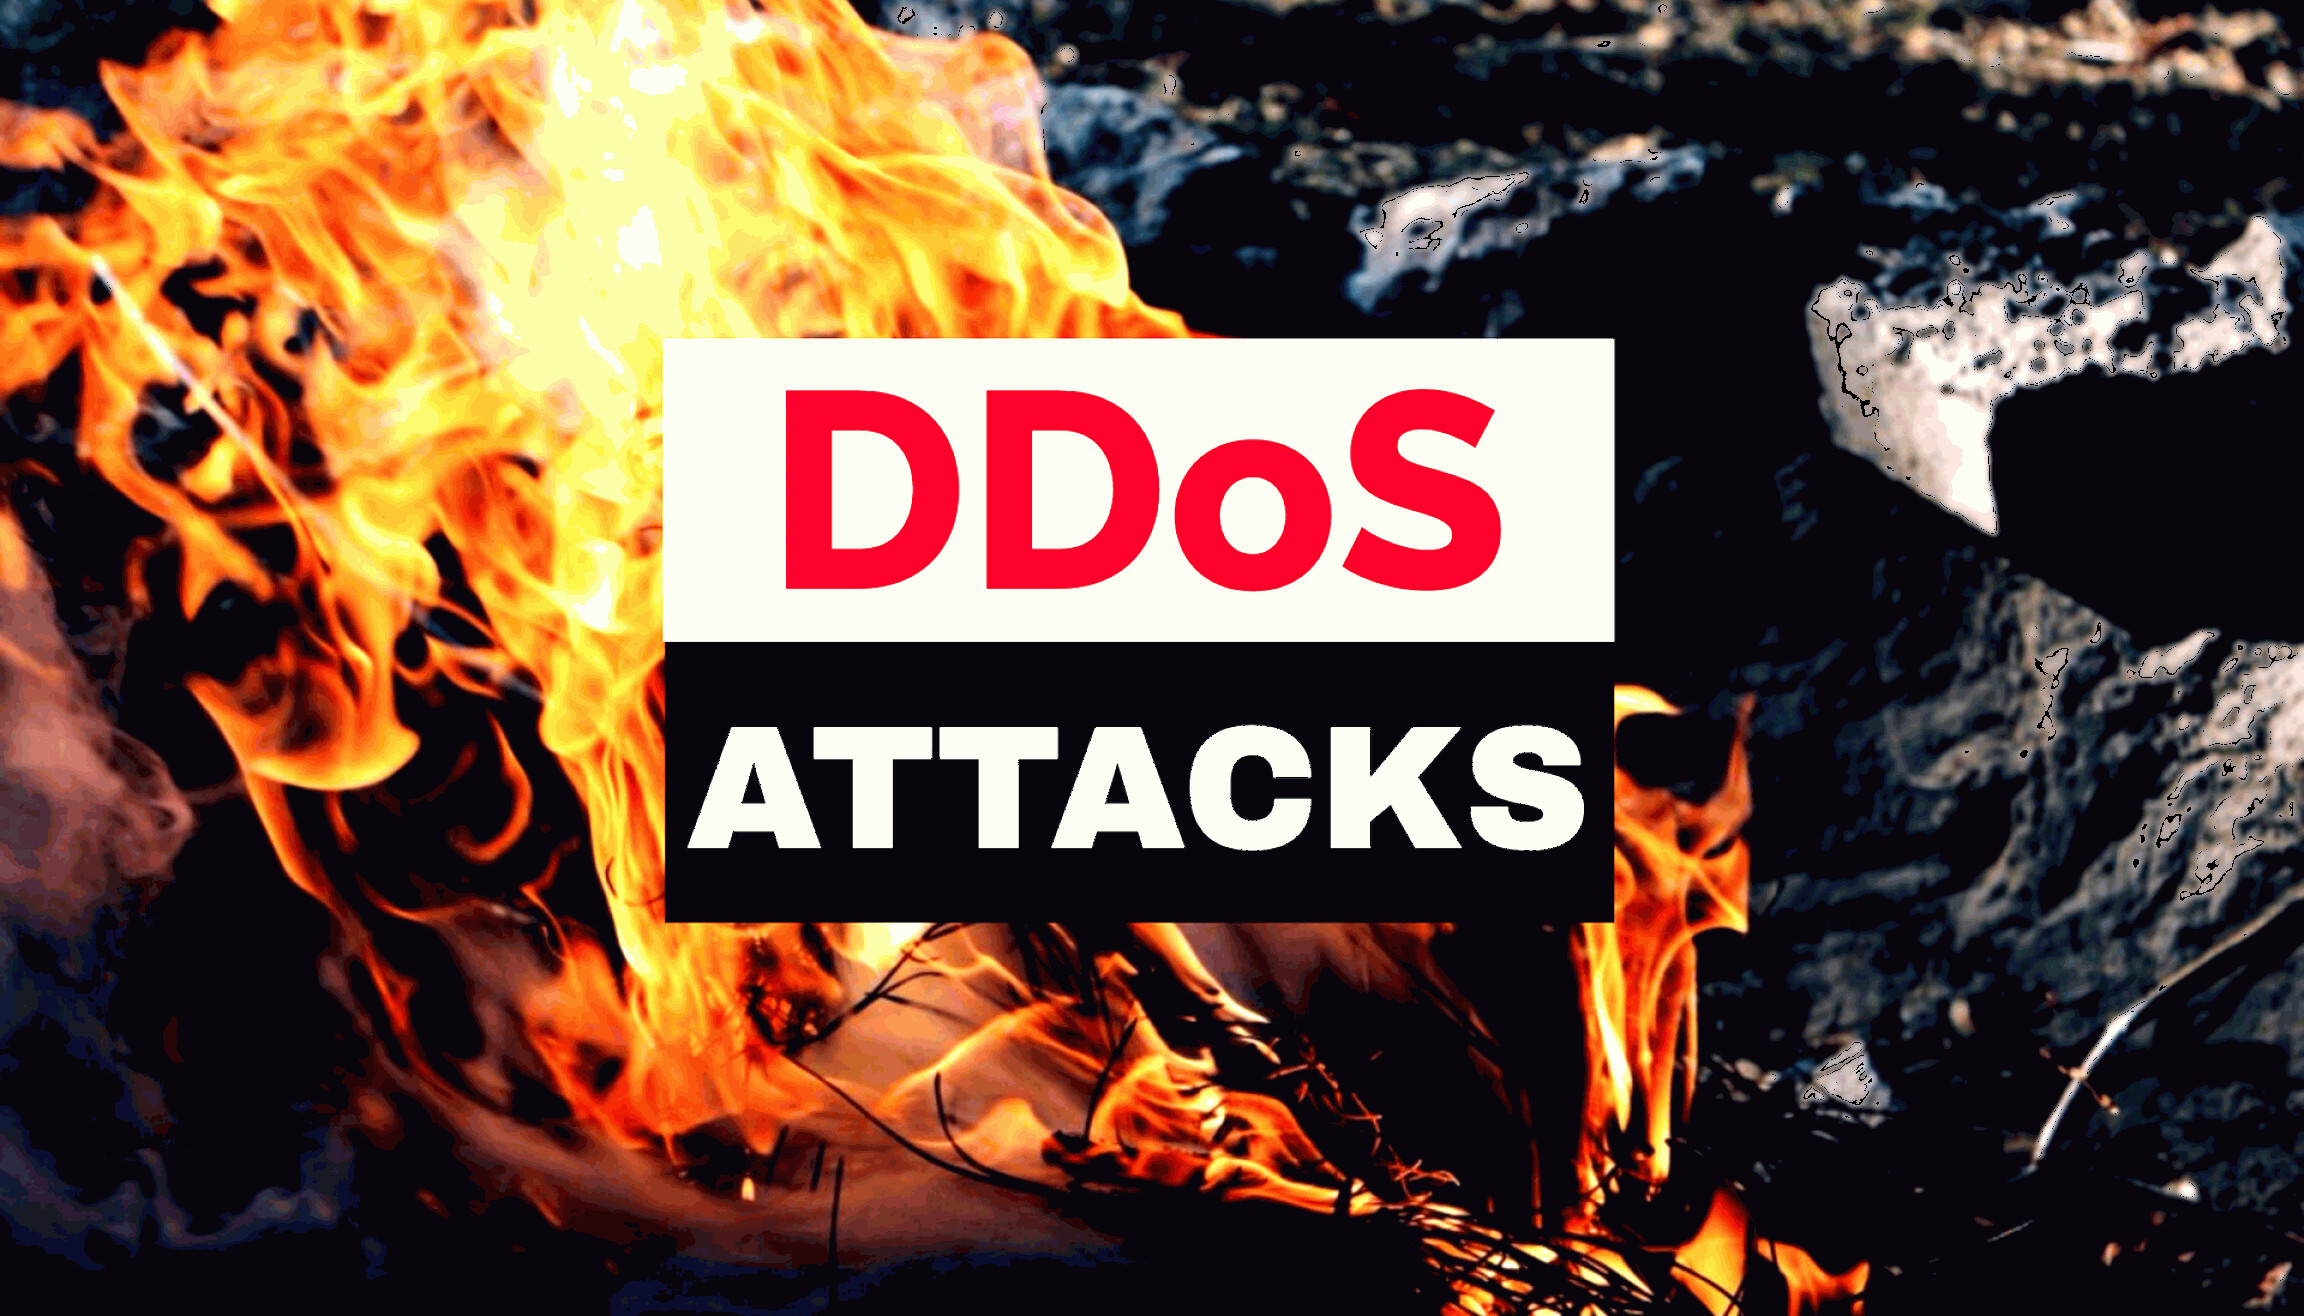 Multi-Vector Attack Plans: Ddos Attack Volumes Grew By In Months